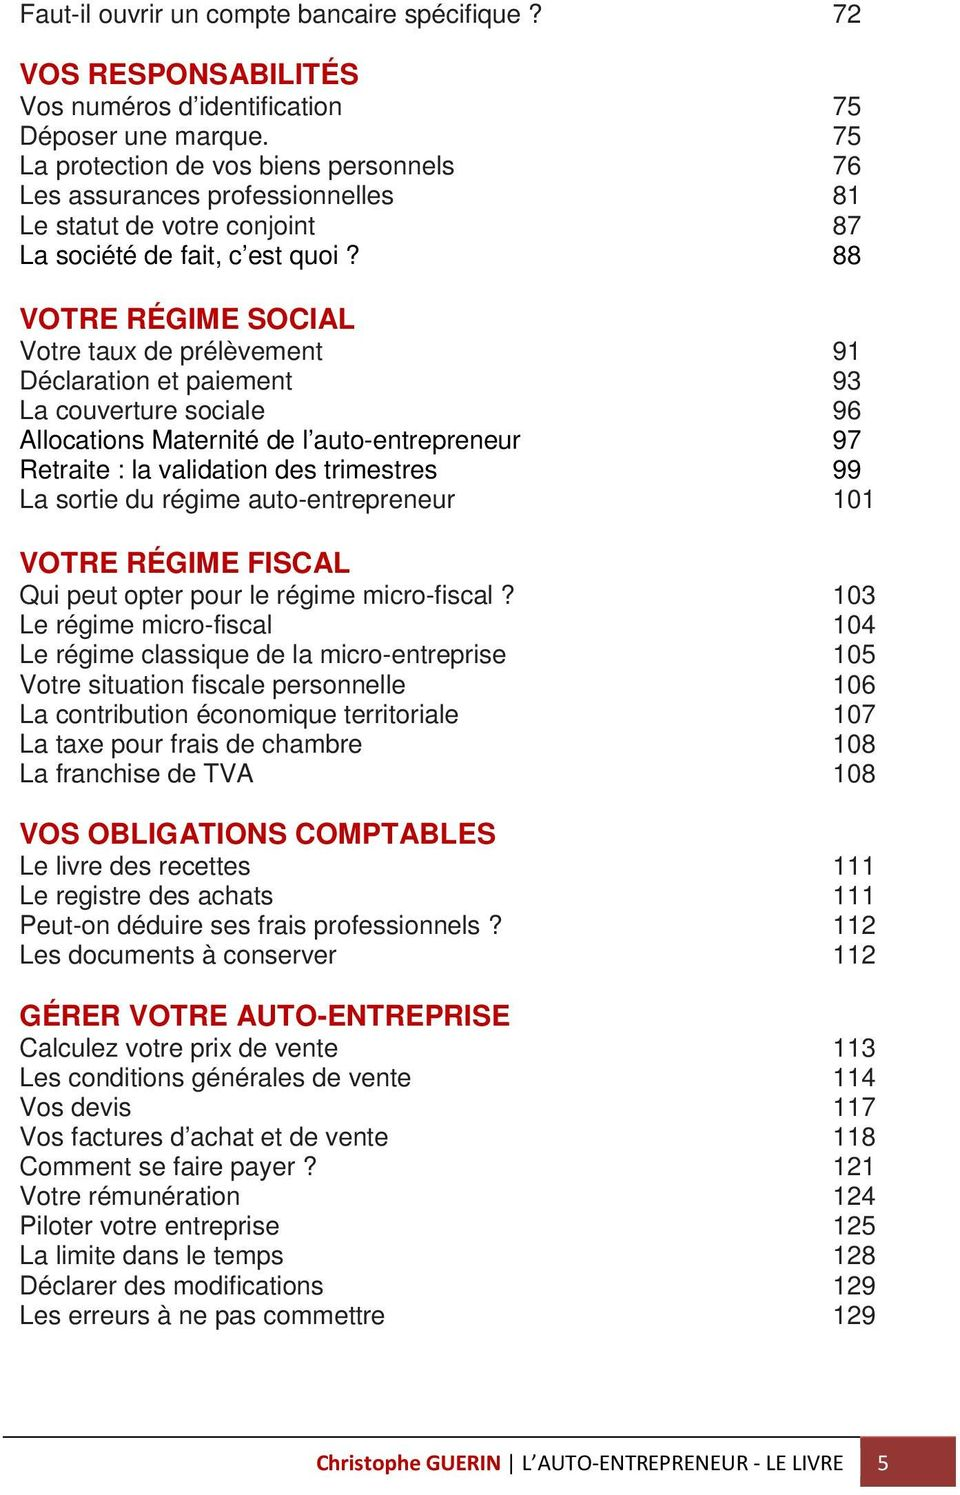 88 VOTRE RÉGIME SOCIAL Votre taux de prélèvement 91 Déclaration et paiement 93 La couverture sociale 96 Allocations Maternité de l auto-entrepreneur 97 Retraite : la validation des trimestres 99 La